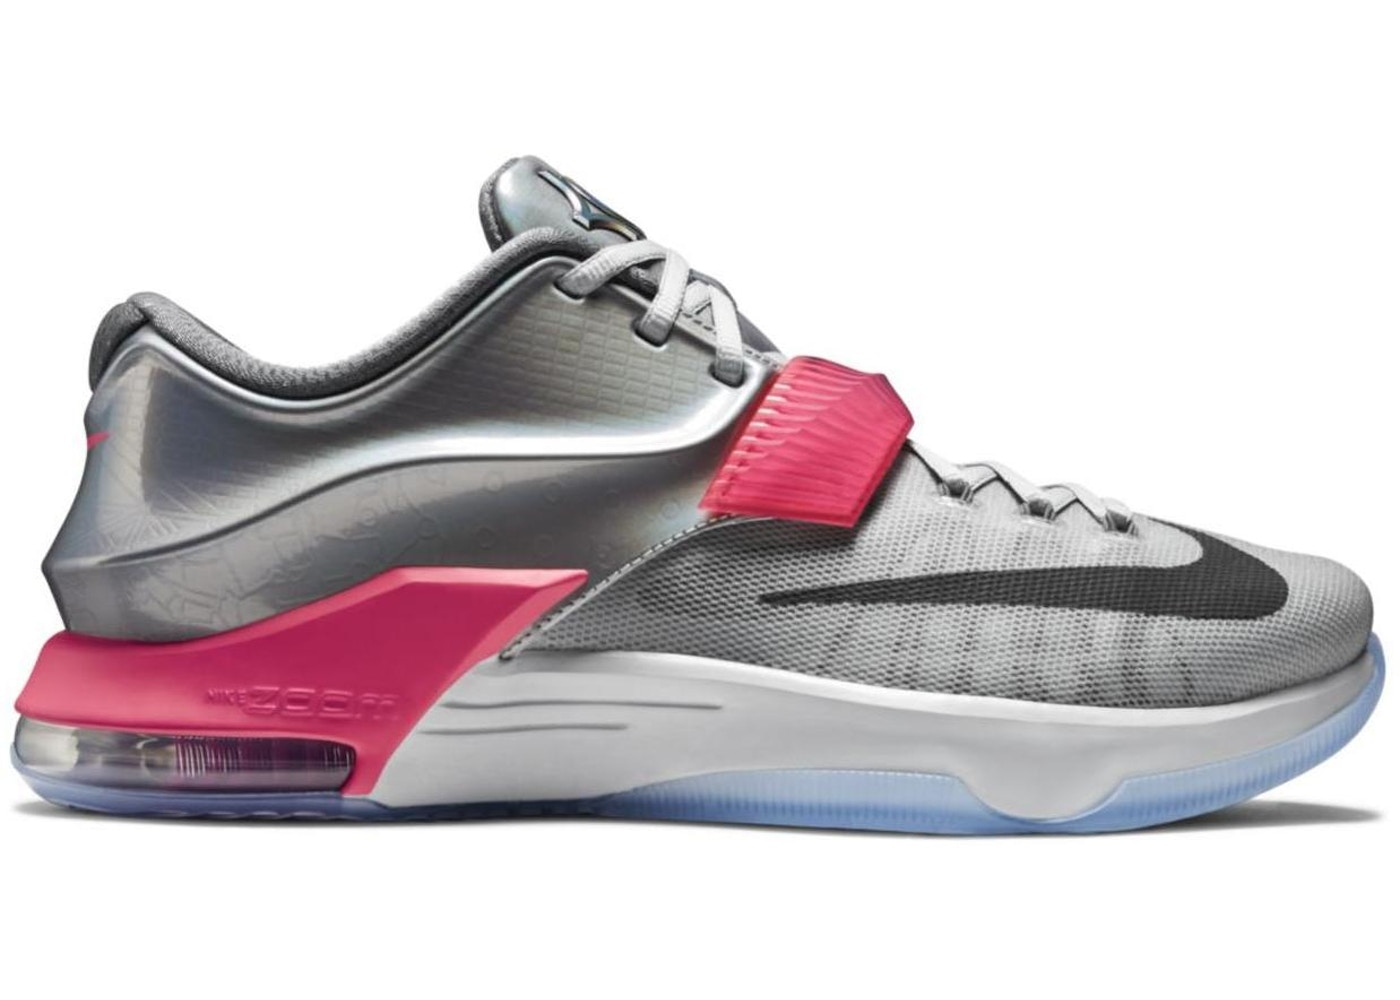 new products 8b755 0dc3e Buy Nike KD 7 Shoes   Deadstock Sneakers